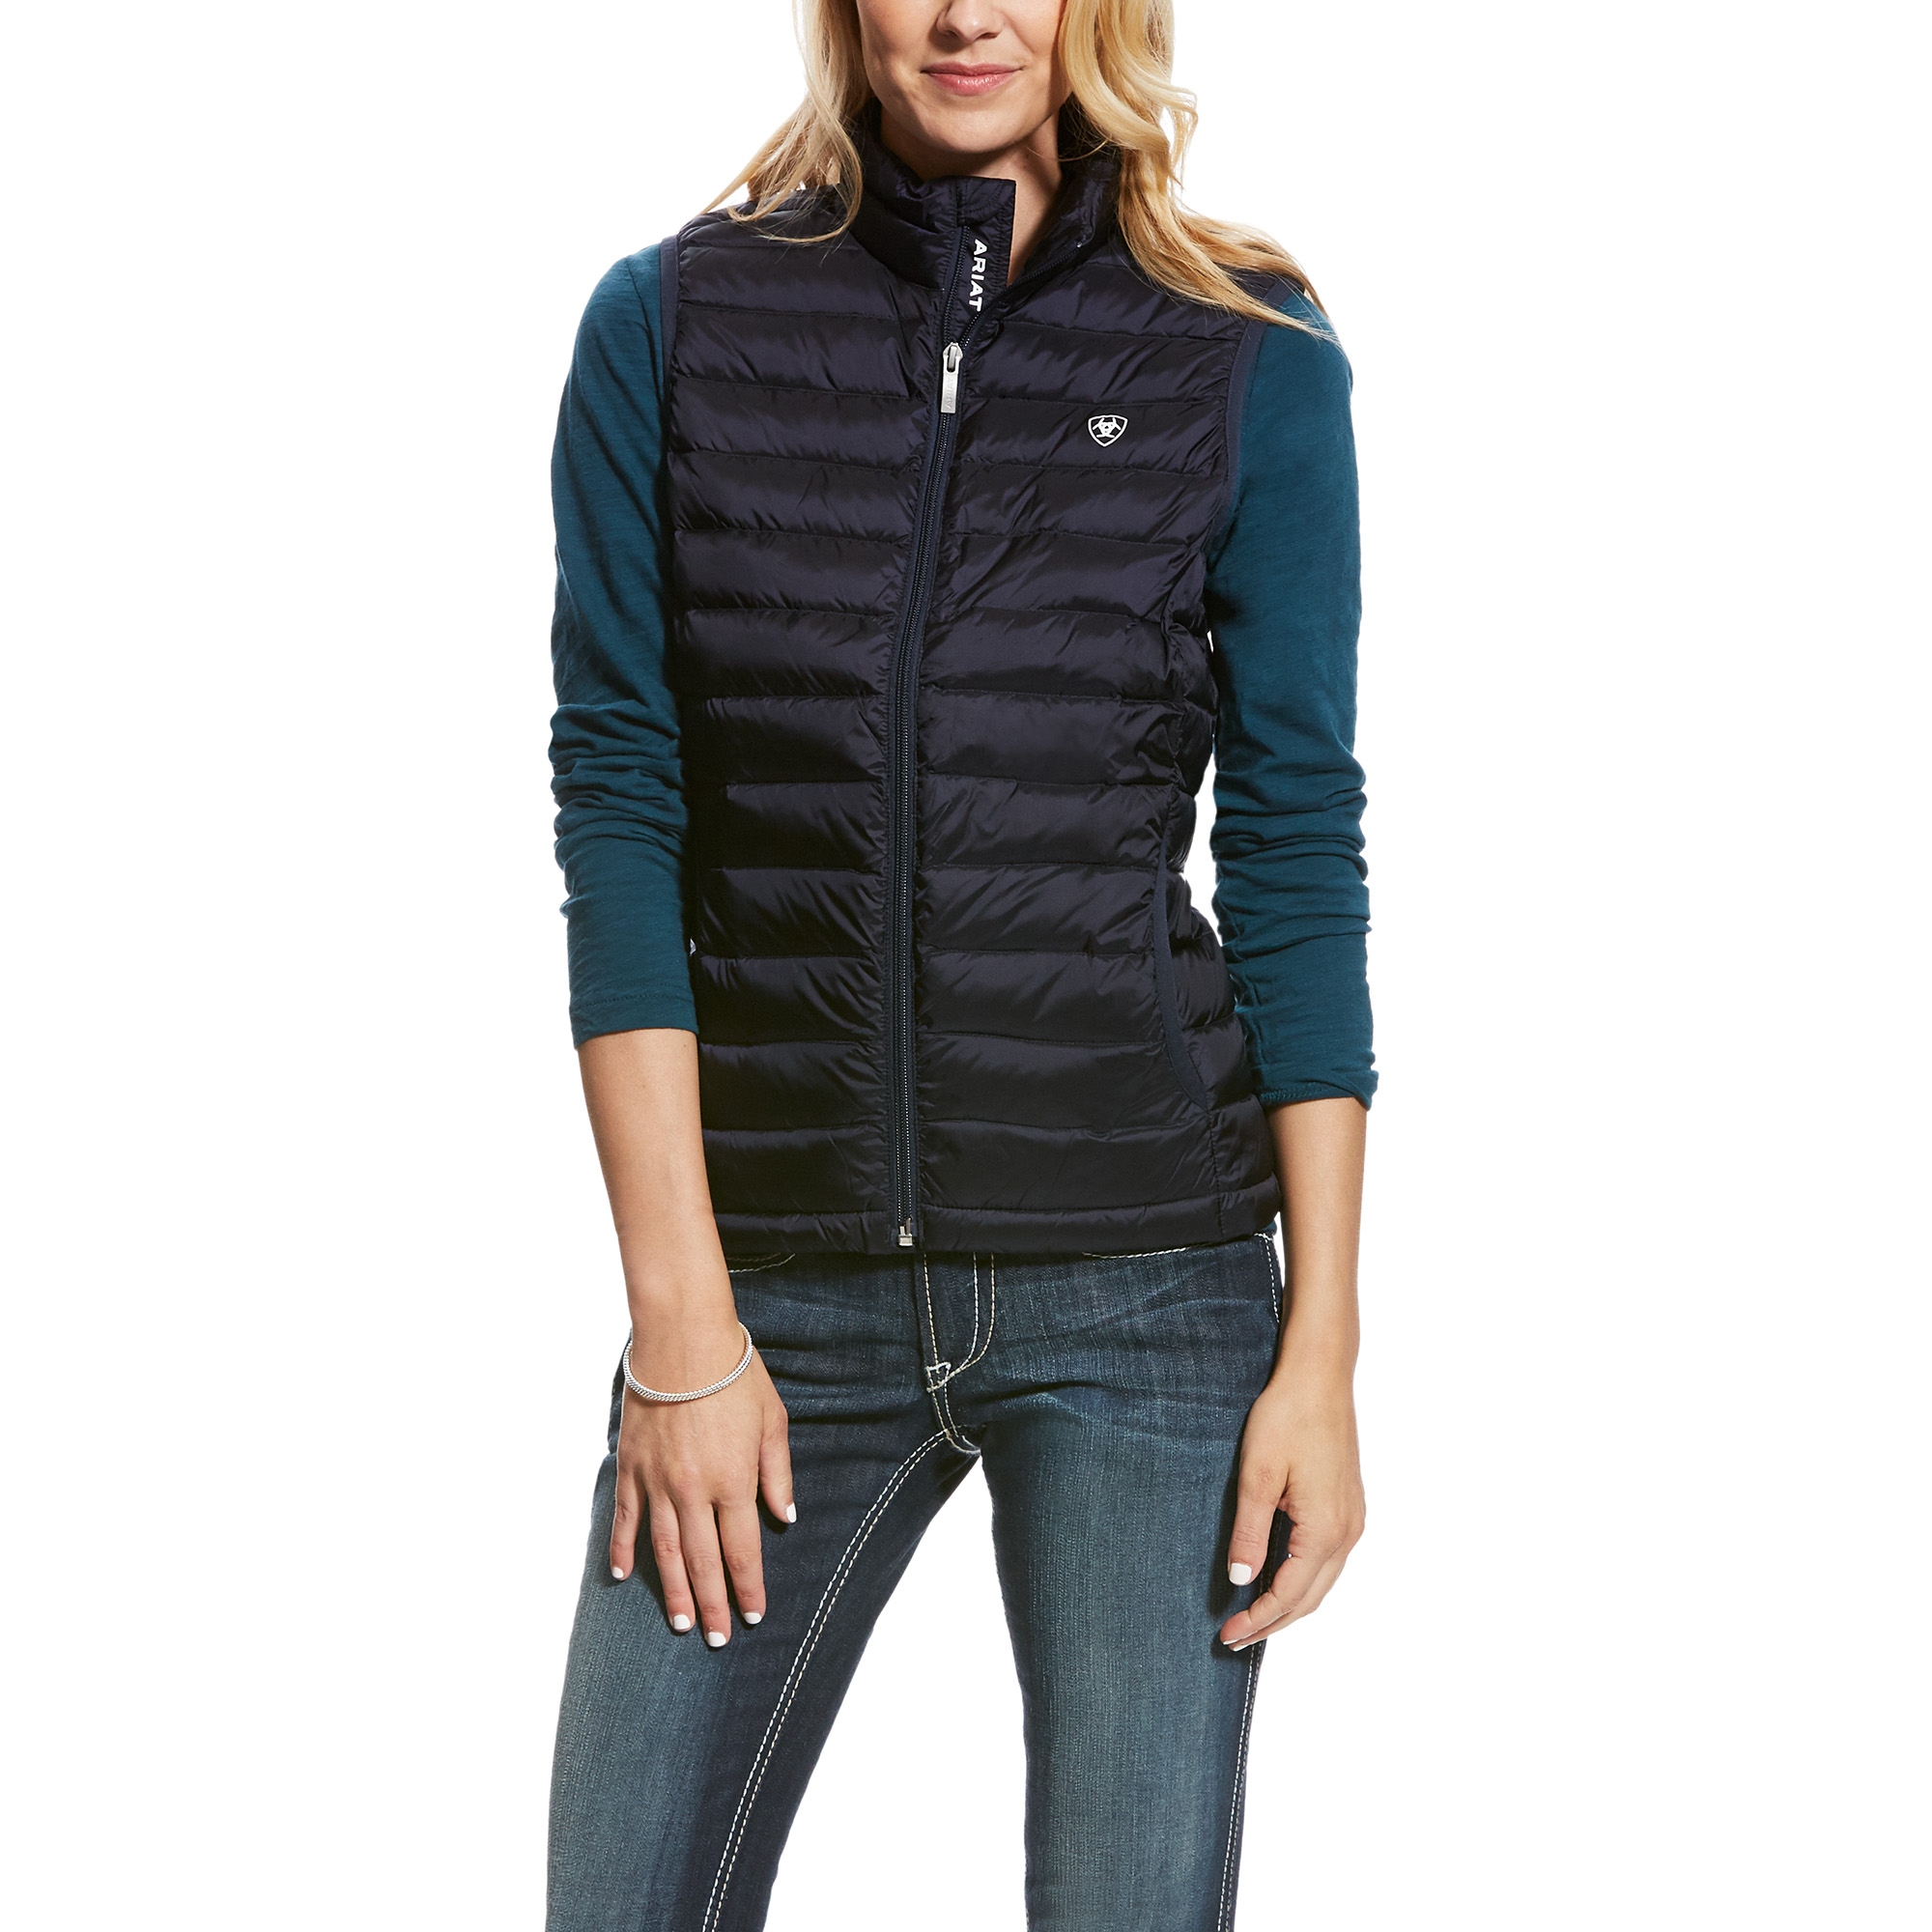 Ideal Vest from Ariat - Navy